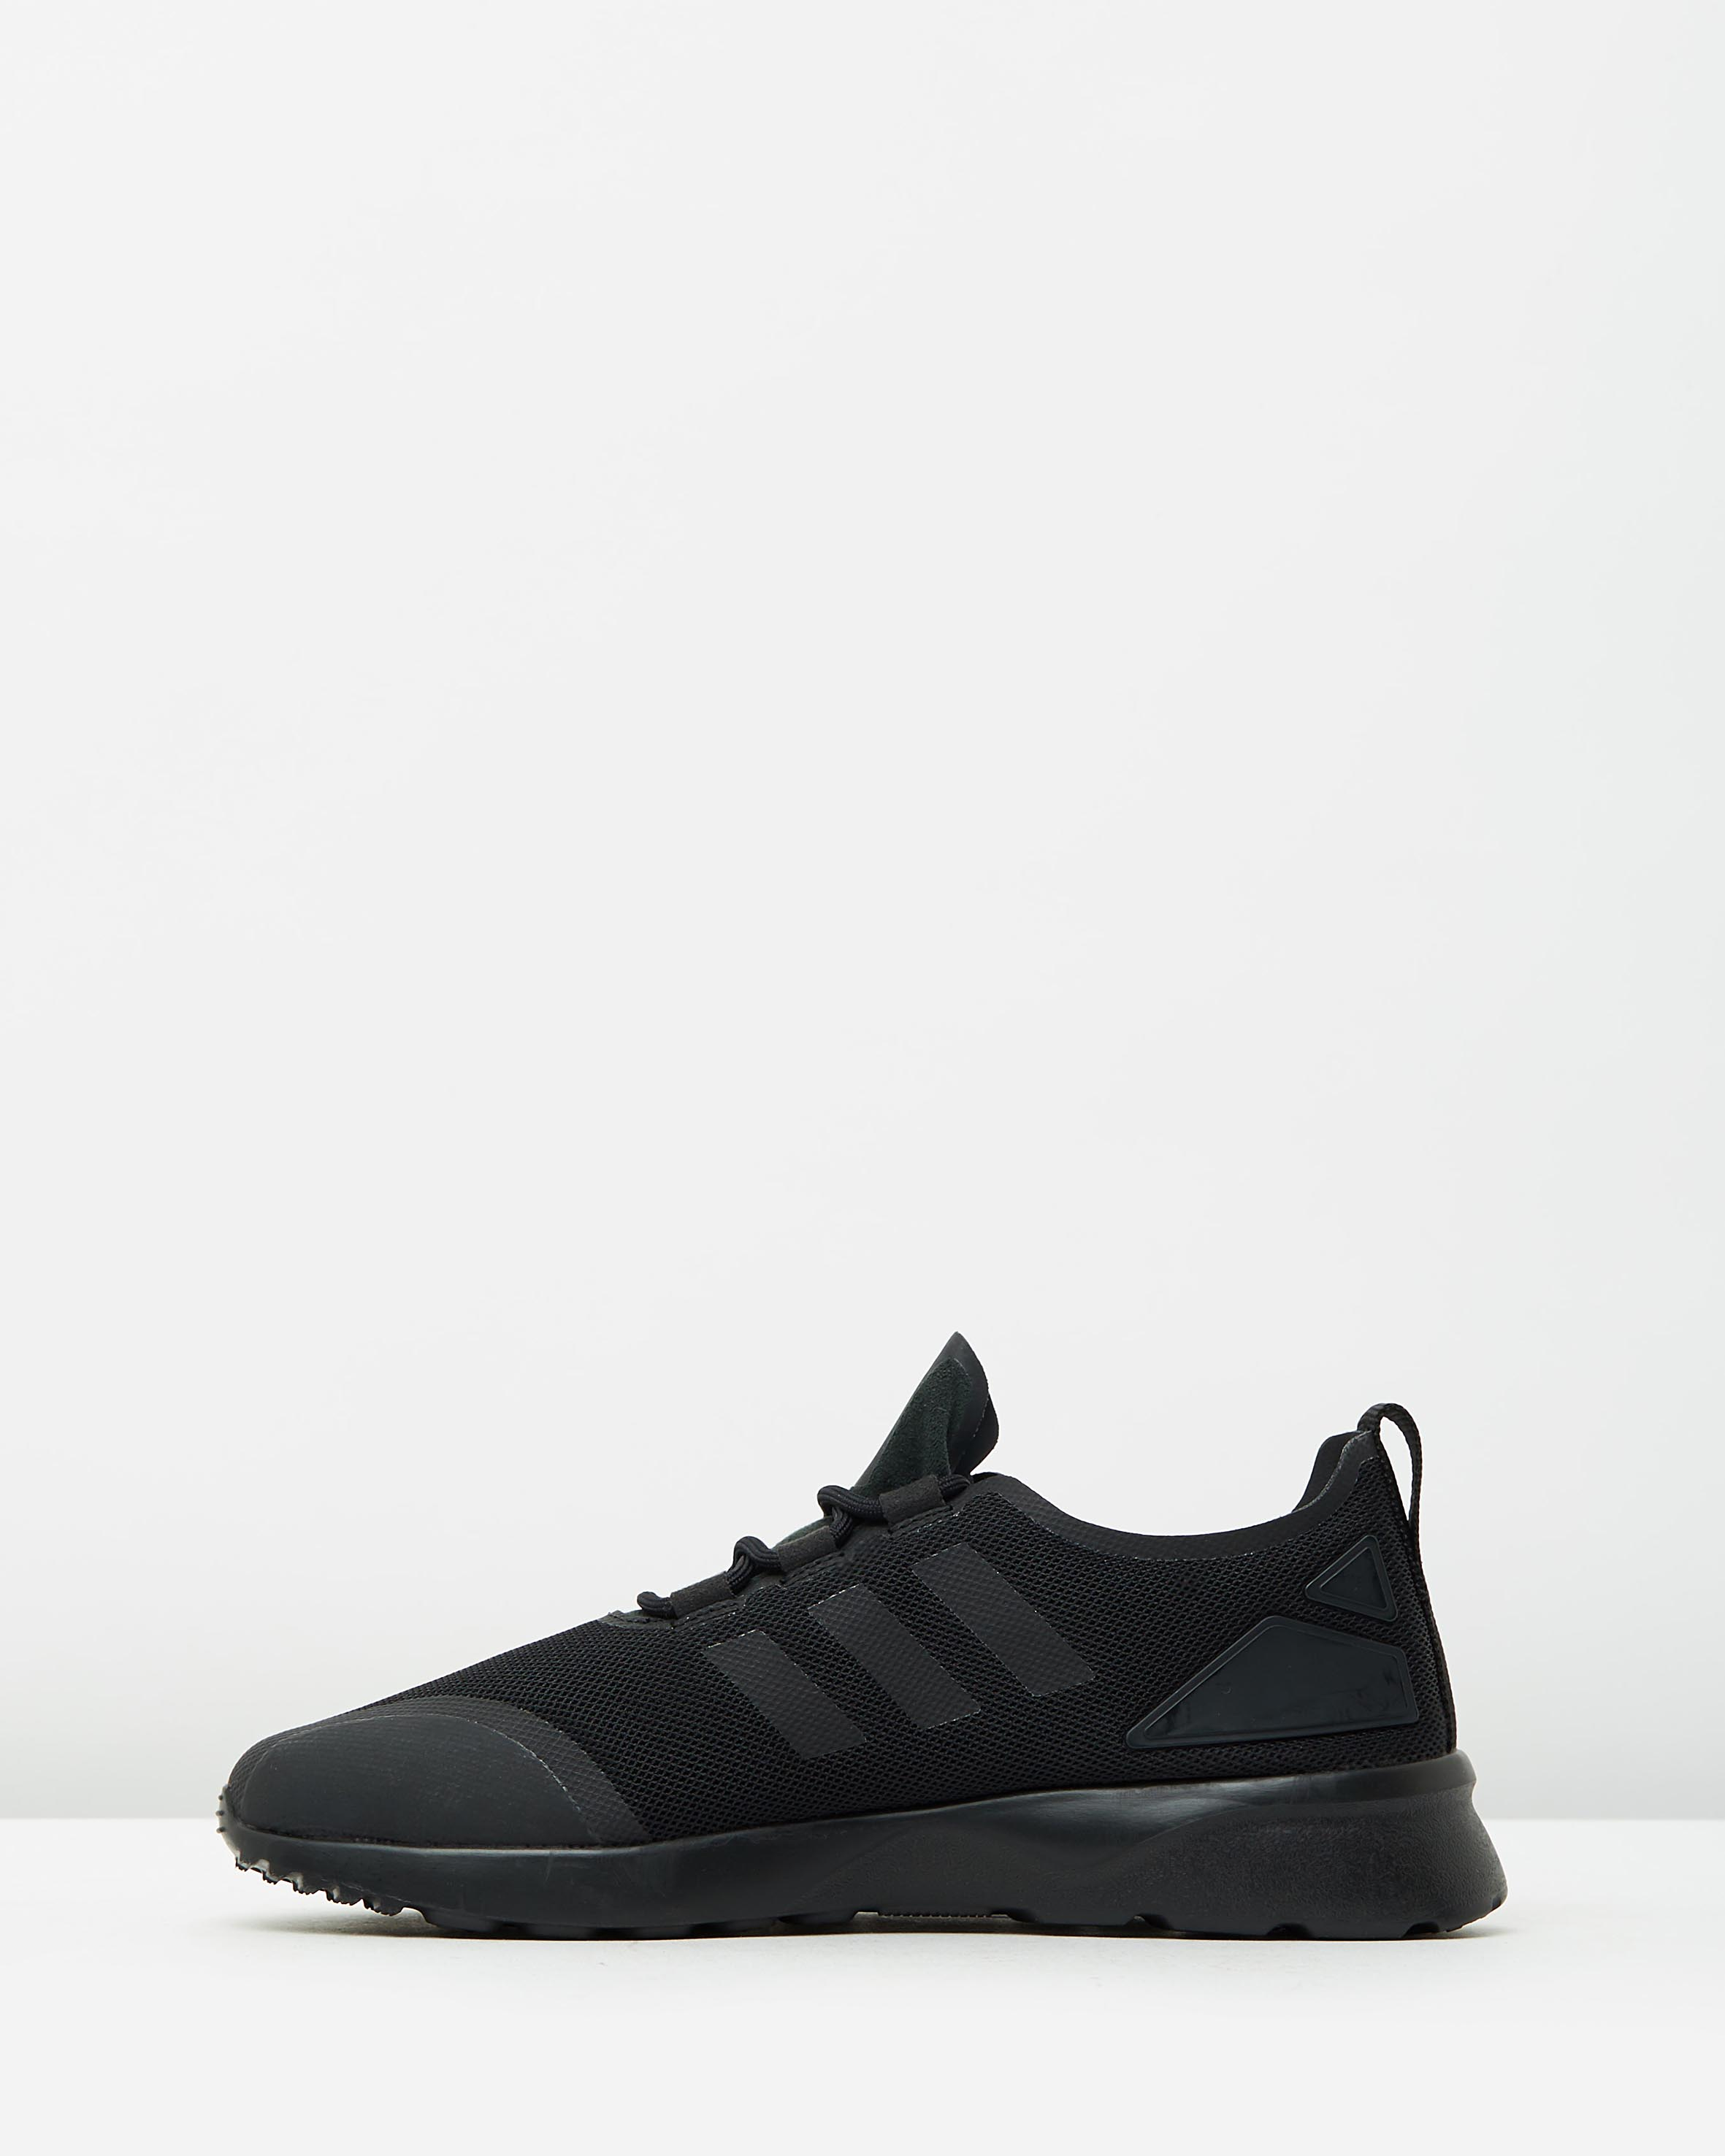 40ed0ead4e1 adidas zx fluxes - Travbeast